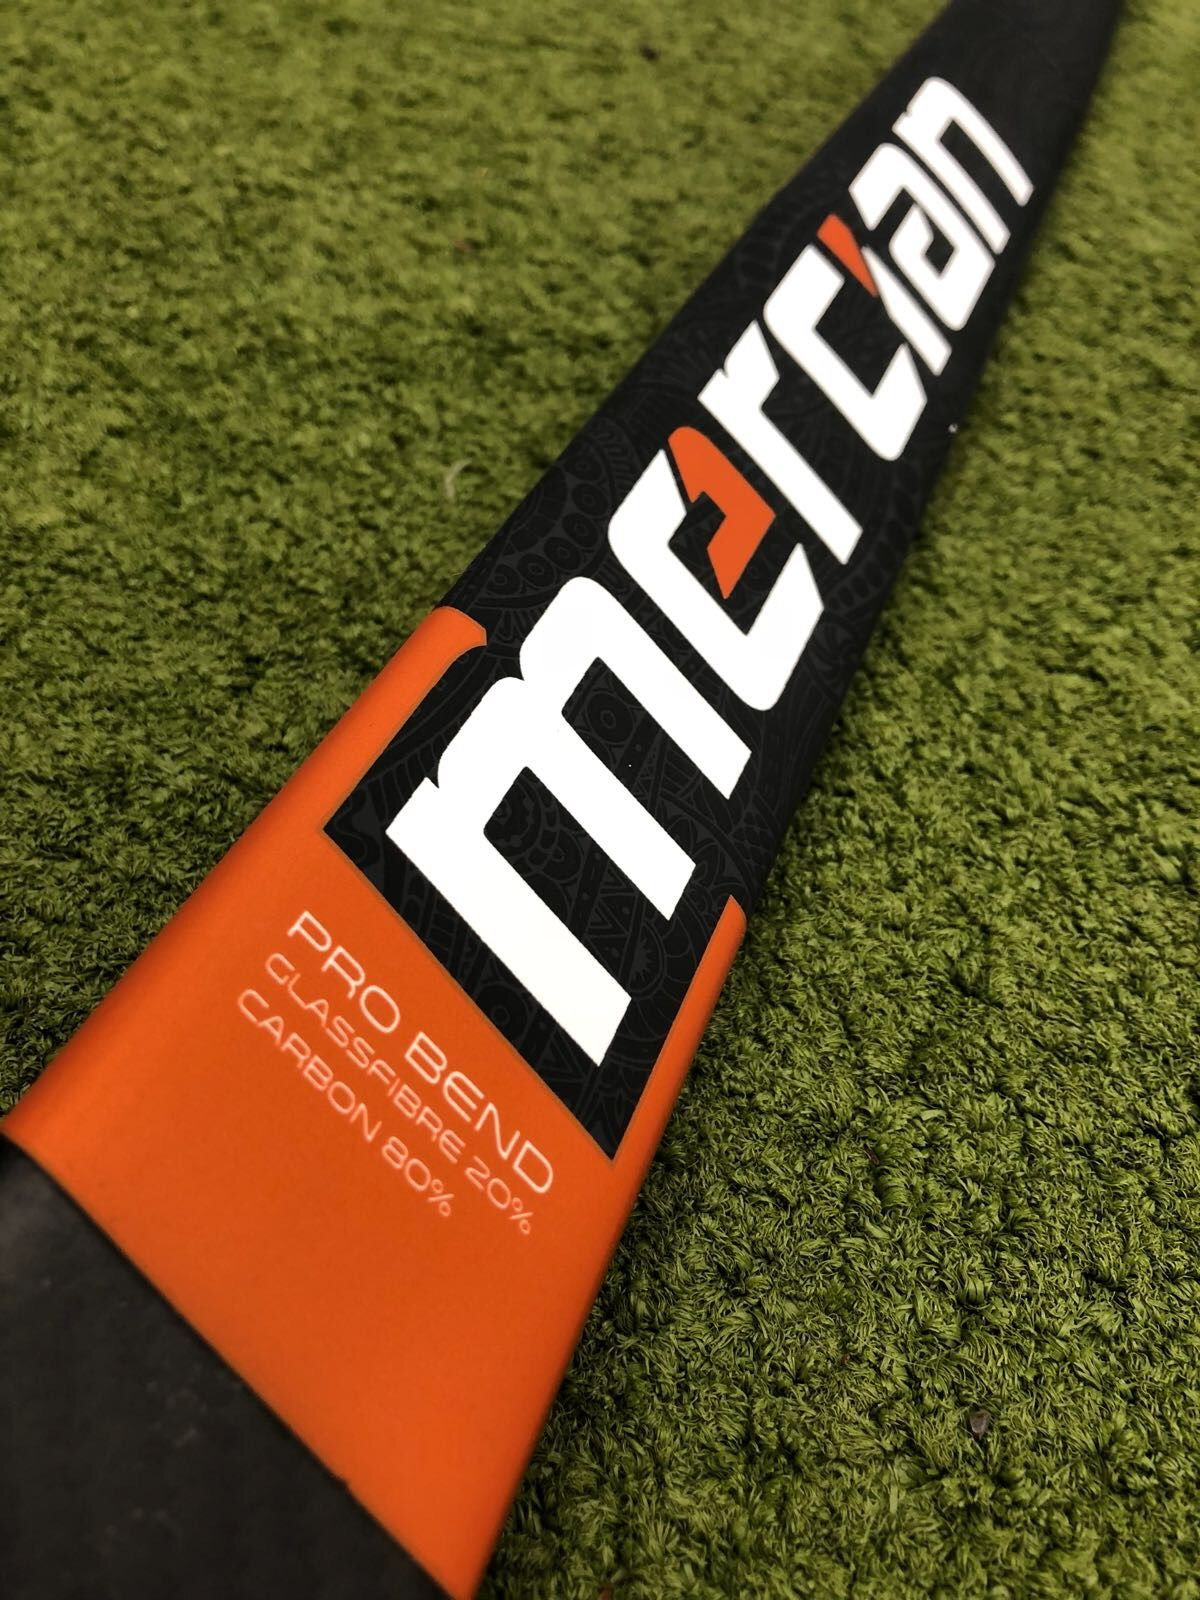 The Mercian Evo 10 Field Hockey Stick Offers A 60 Carbon Stick In Pro Bend At An Exceptional Price The Material Lay U Field Hockey Field Hockey Sticks Hockey